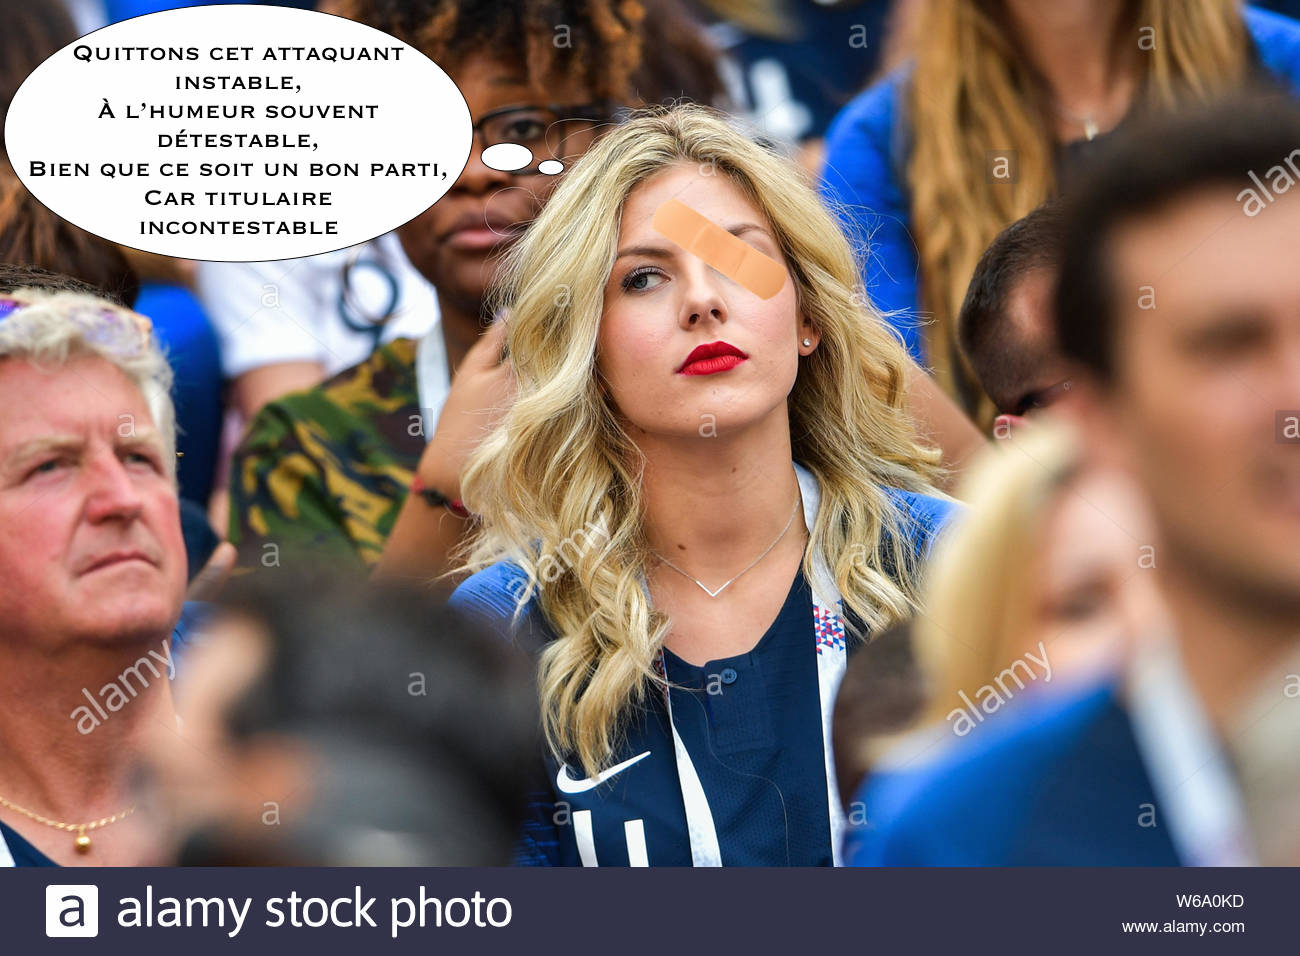 camille-tytgat-the-wife-of-real-madrids-french-football-player-raphael-varane-is-pictured-before-the-group-c-match-between-france-and-denmark-durin-W6A0KD